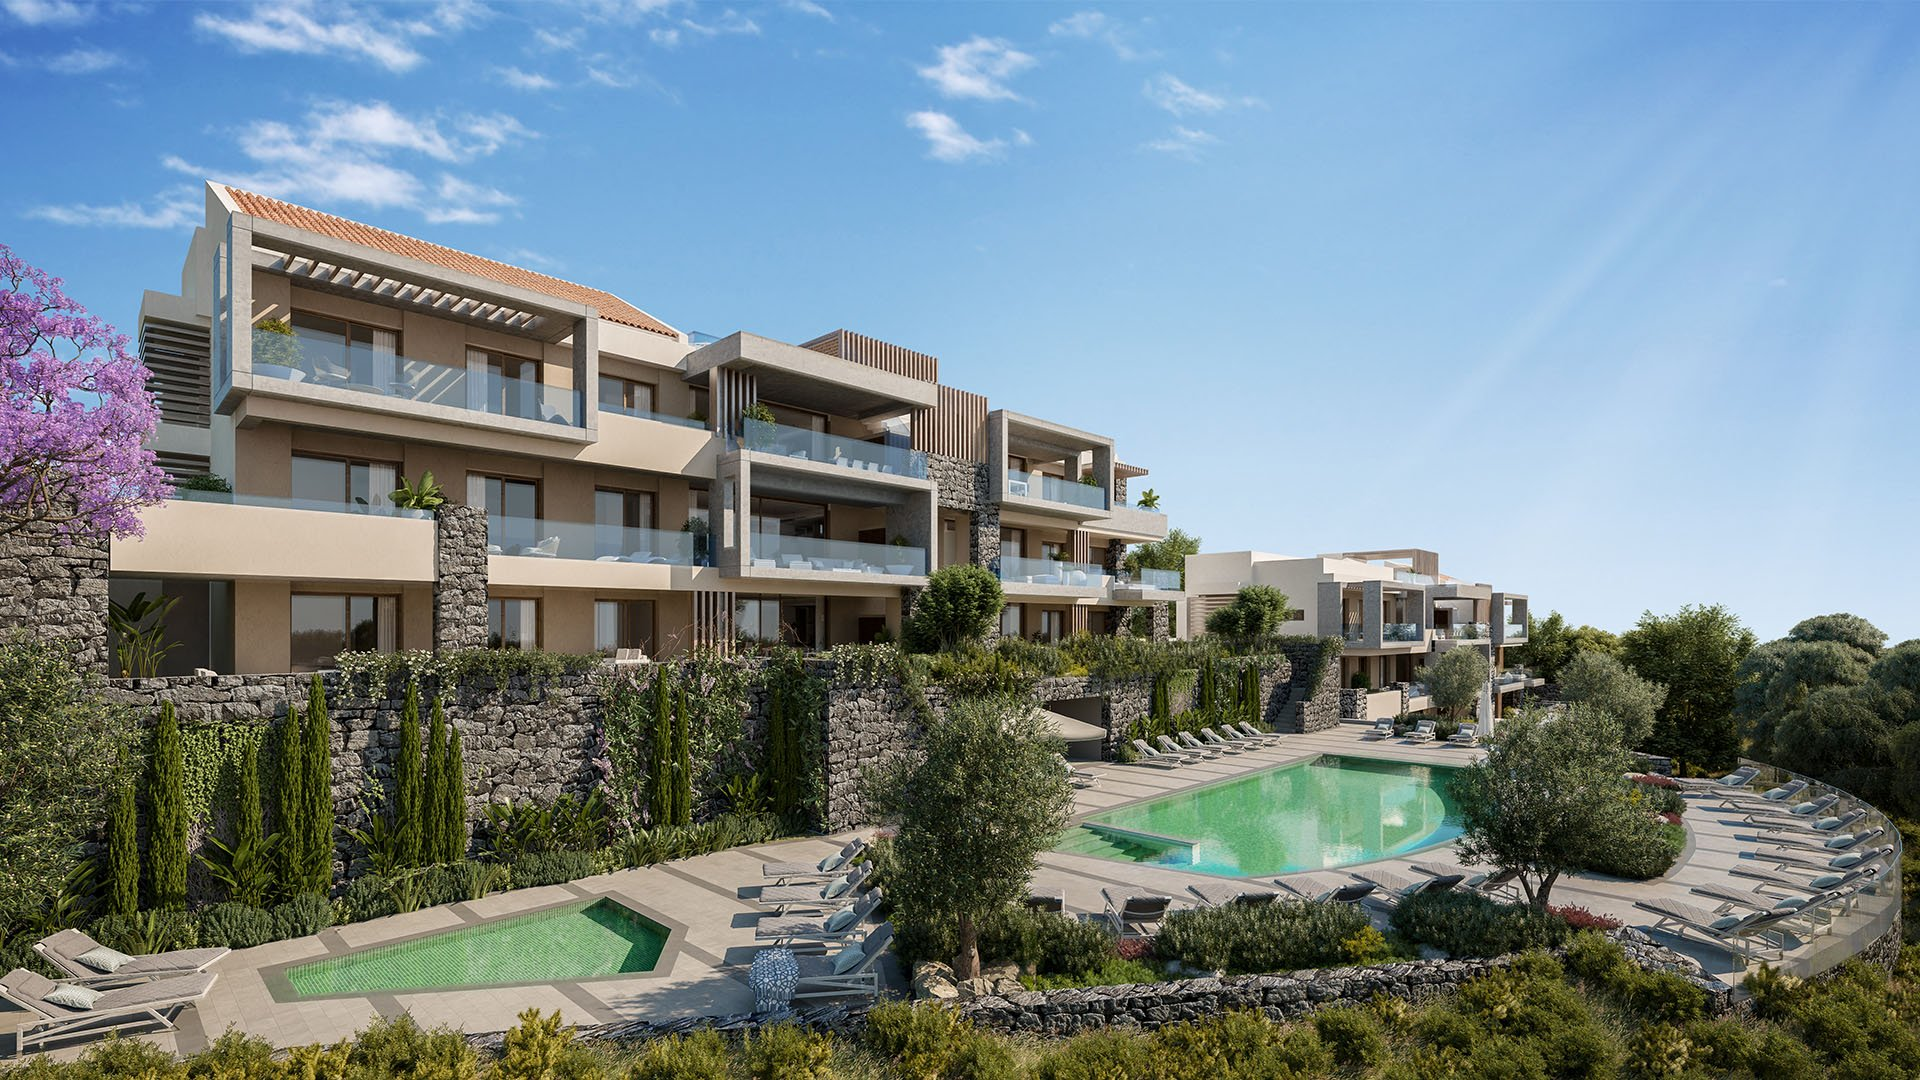 Olivos in Real de La Quinta: Impressive resort with affordable luxury apartments